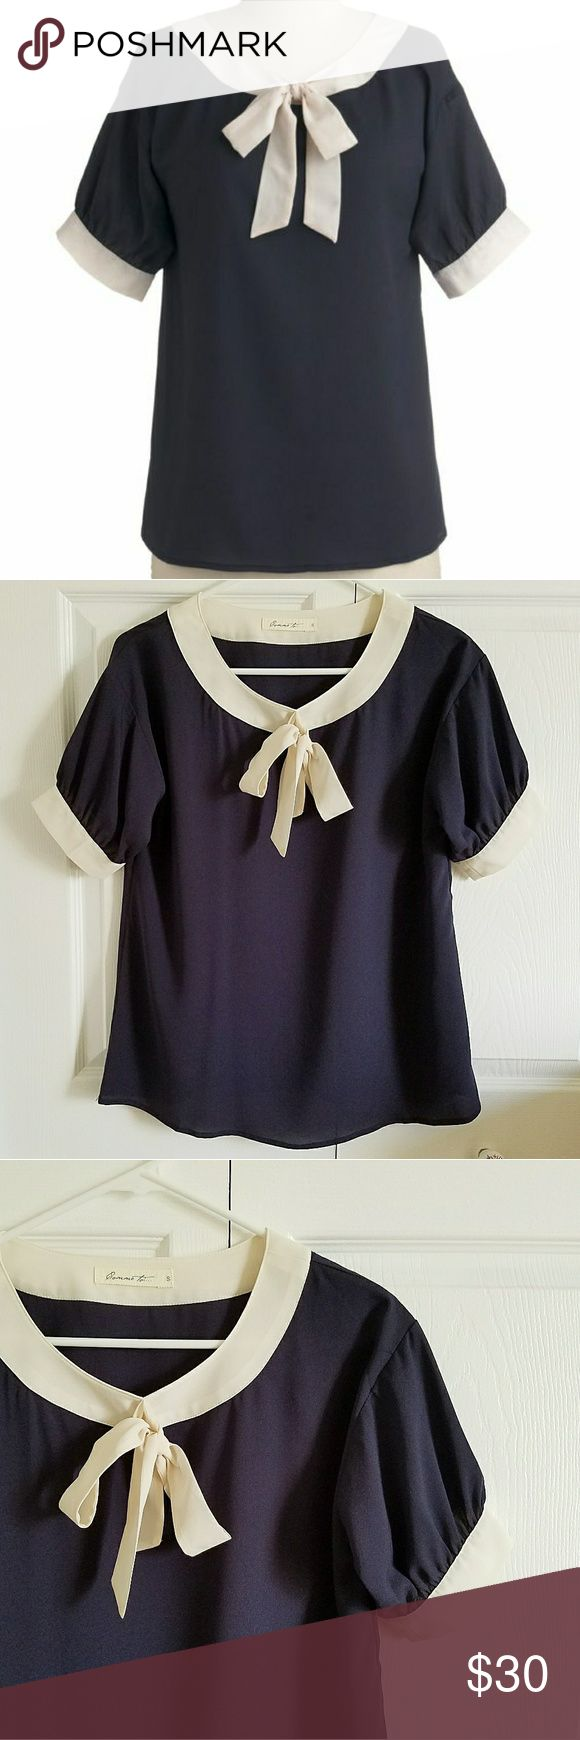 MOD CLOTH Blue Madeline Blouse Sweet Bow COMME TOI Women's COMME TOI Modern Madeline blouse. Size Small. Loose fitting. Dark blue in color with soft white details. Neck ties into a bow. Short sleeves. 100% polyester. Purchased from MOD CLOTH.  Measurements (while lying flat): Shoulder to shoulder- 18 inches Armpit to armpit- 29 inches Sleeve length- 7 1/2 inches Top to bottom hem- 24 inches  PREOWNED. Never worn. No rips, stains or odor.  *First photo is a stock photo. Comme Toi…